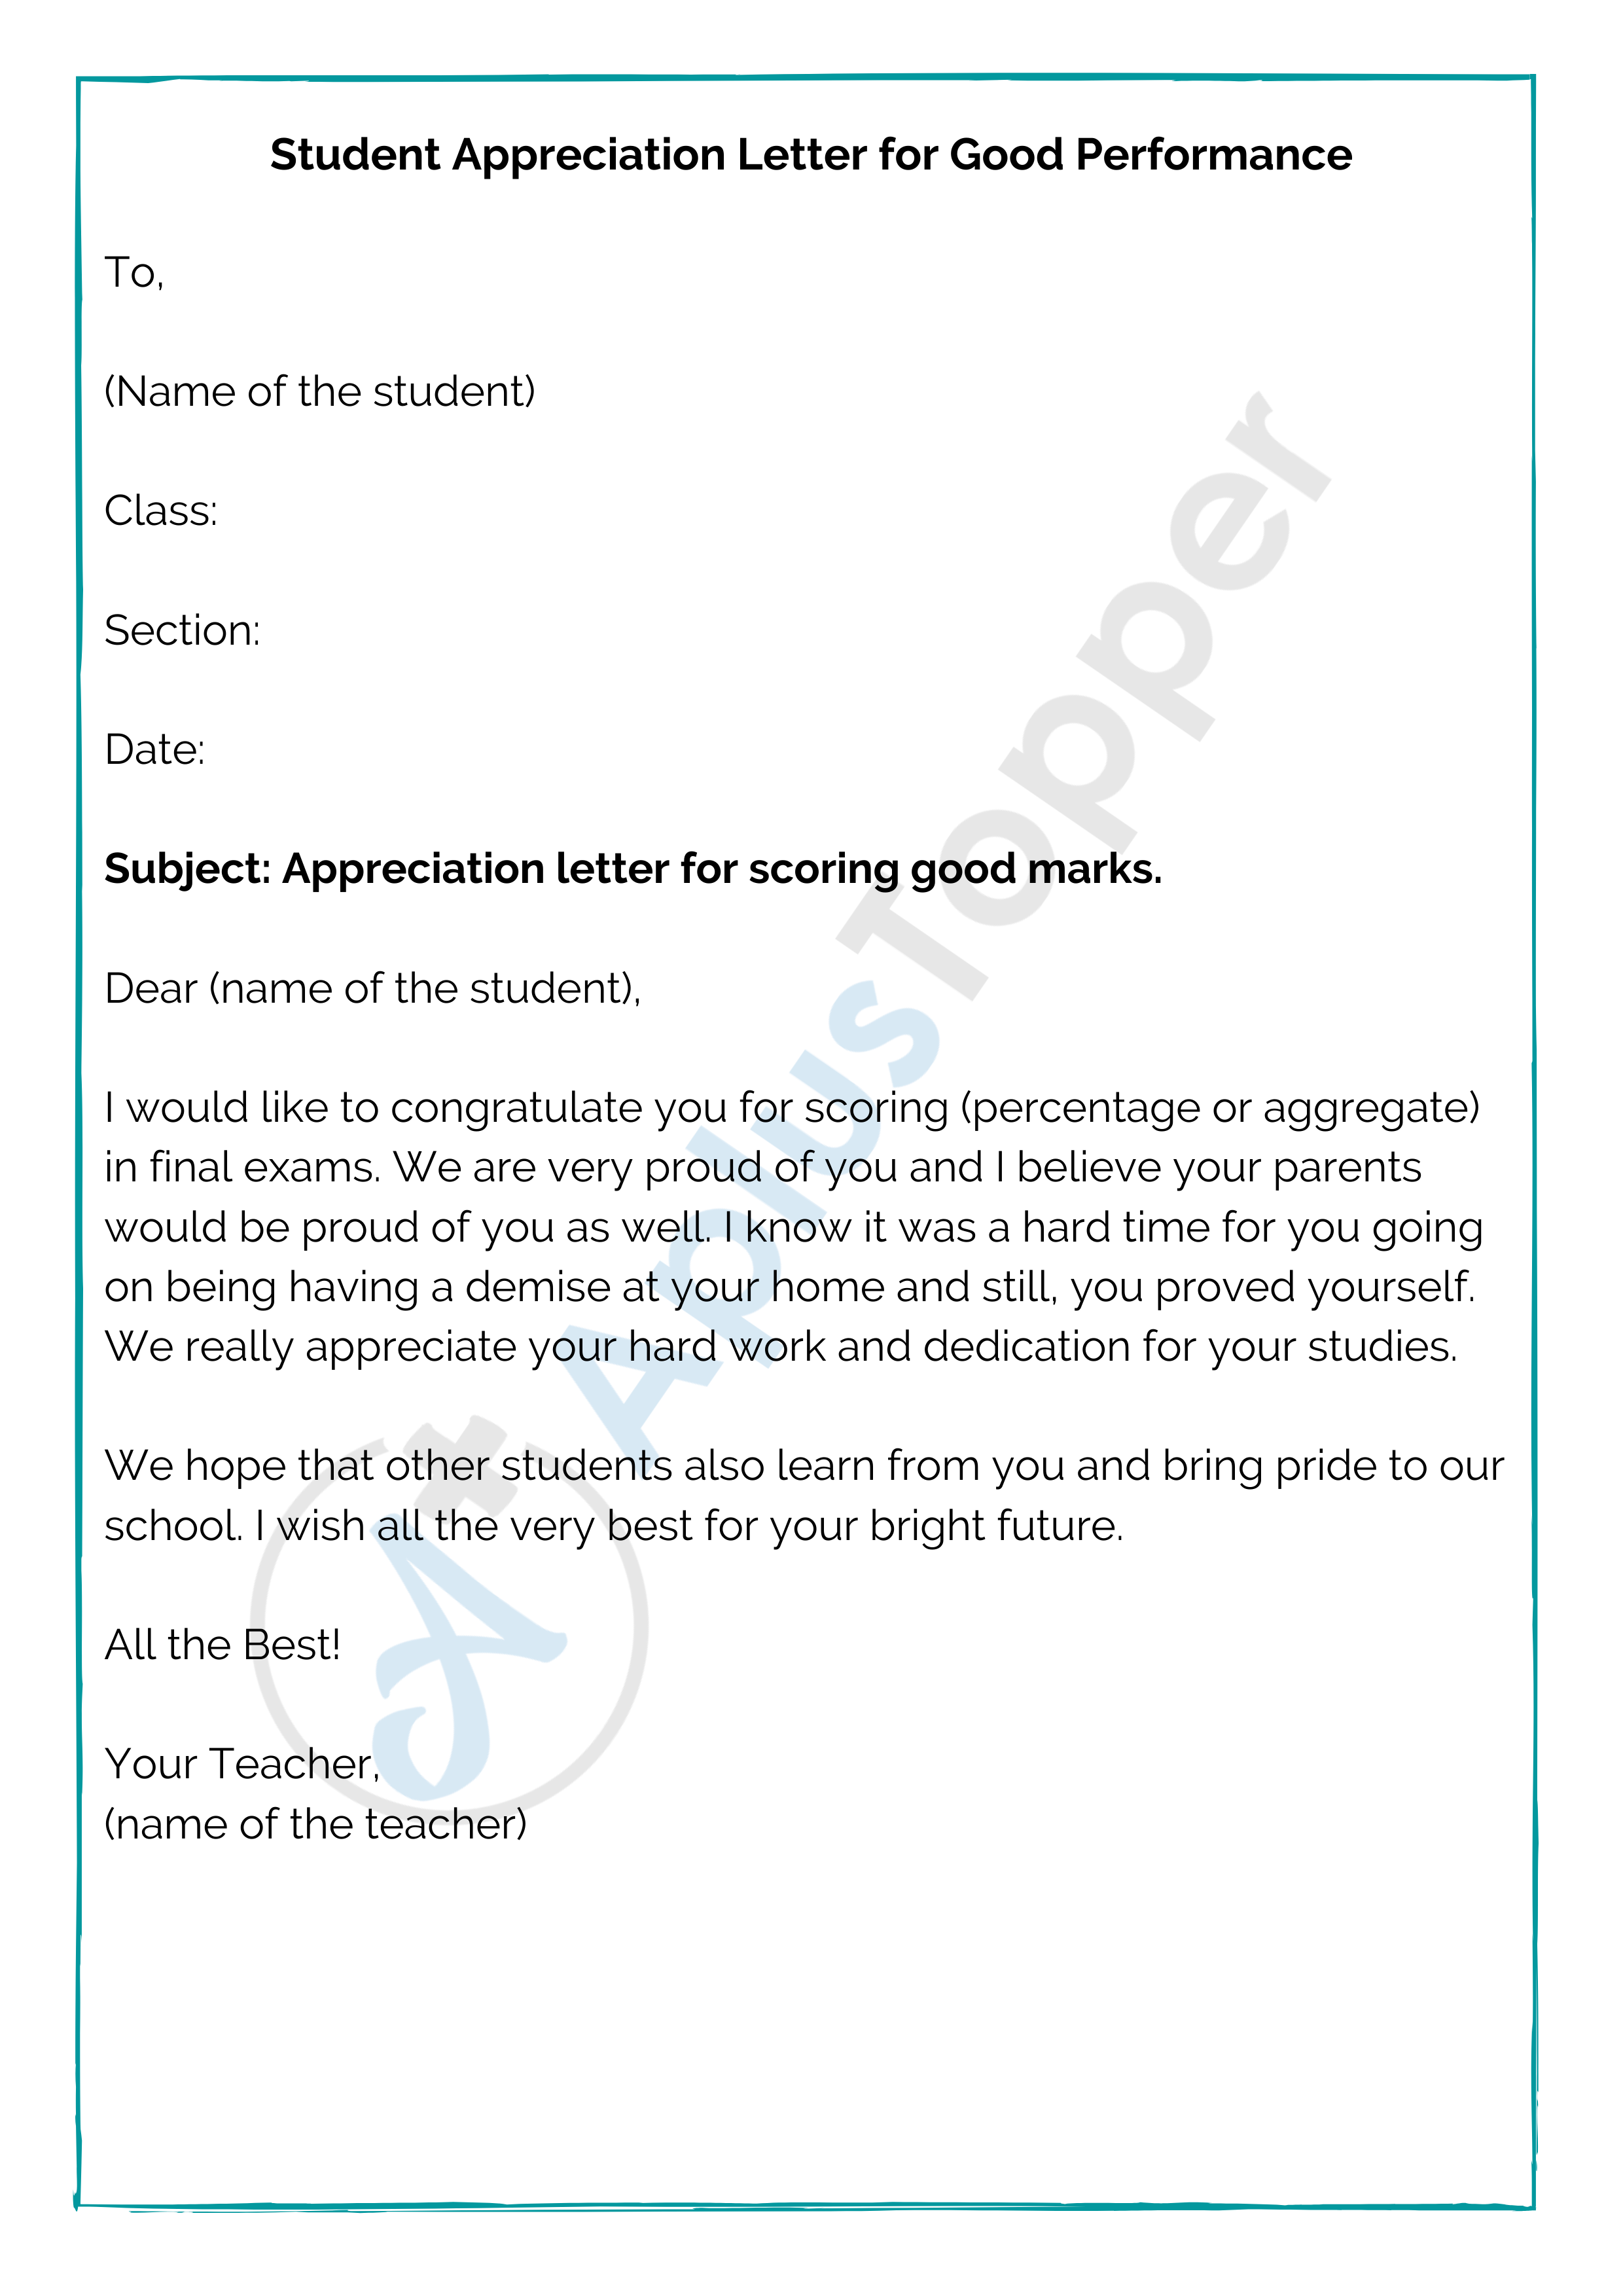 Student Appreciation Letter for Good Performance